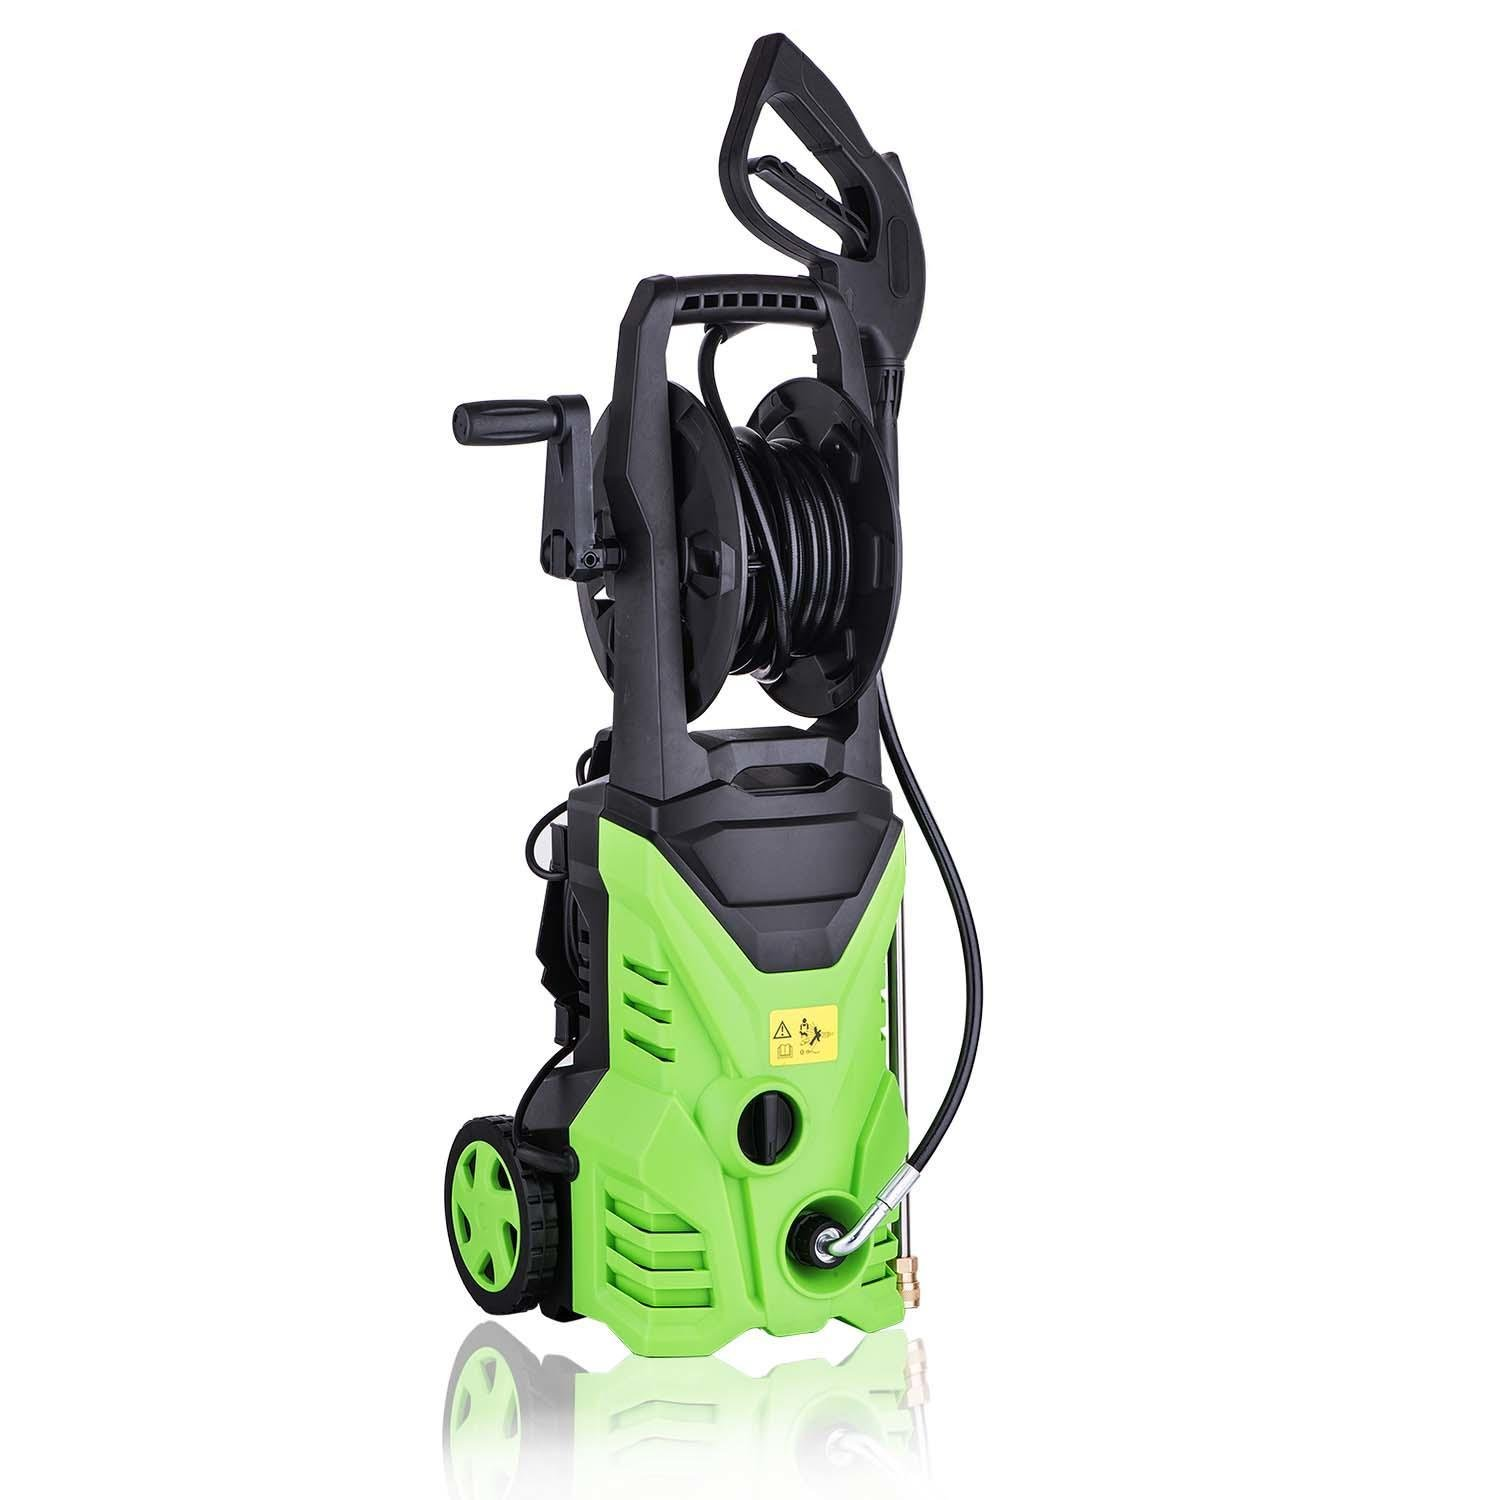 casulo 1600W 1.7GPM 2600PSI Electric Automatic Pressure Washer with Shaft 5 Quick Connect Spray Tips